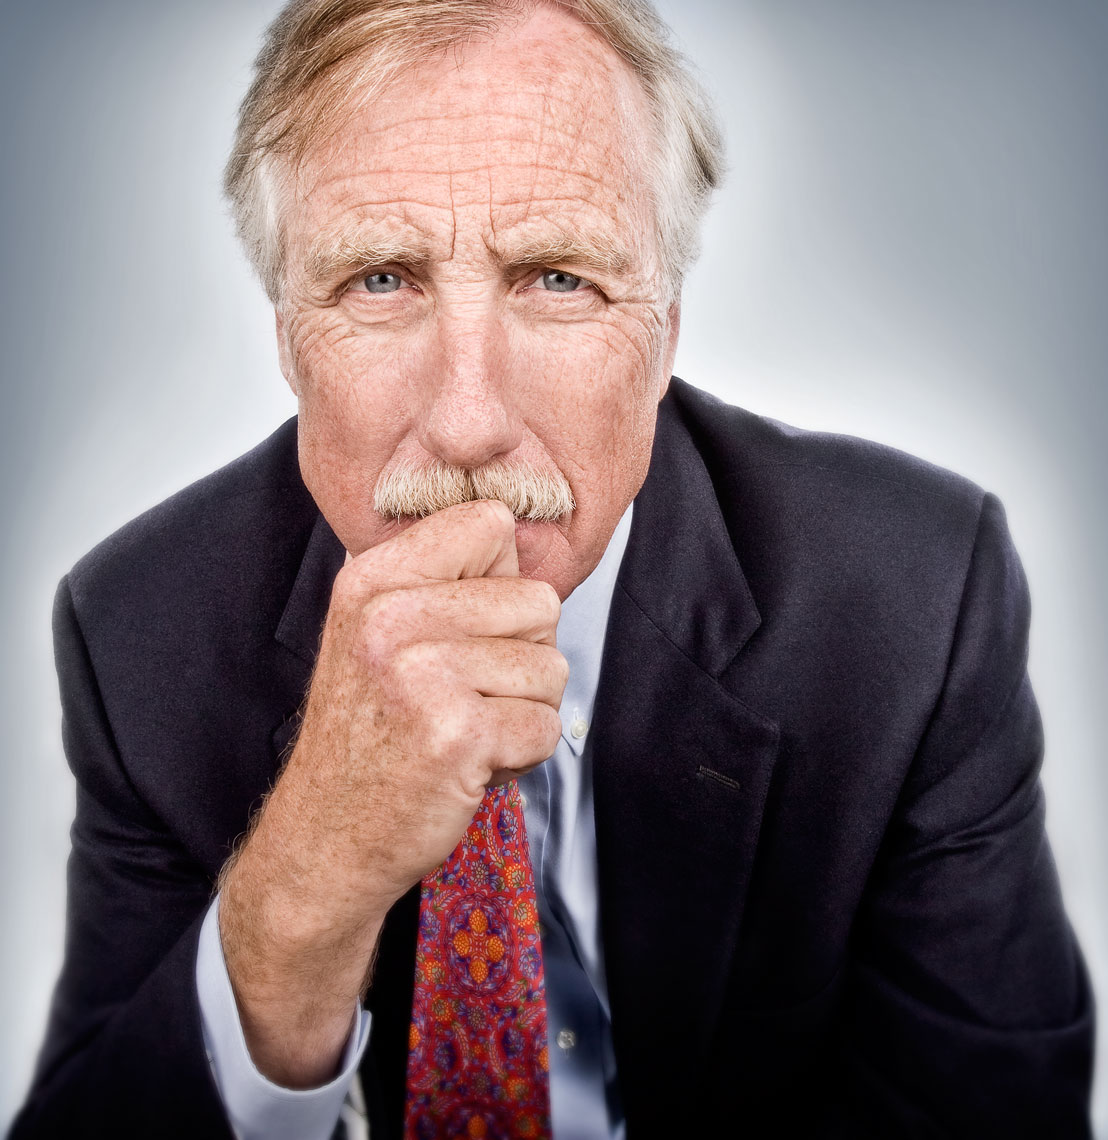 Angus King | Politician